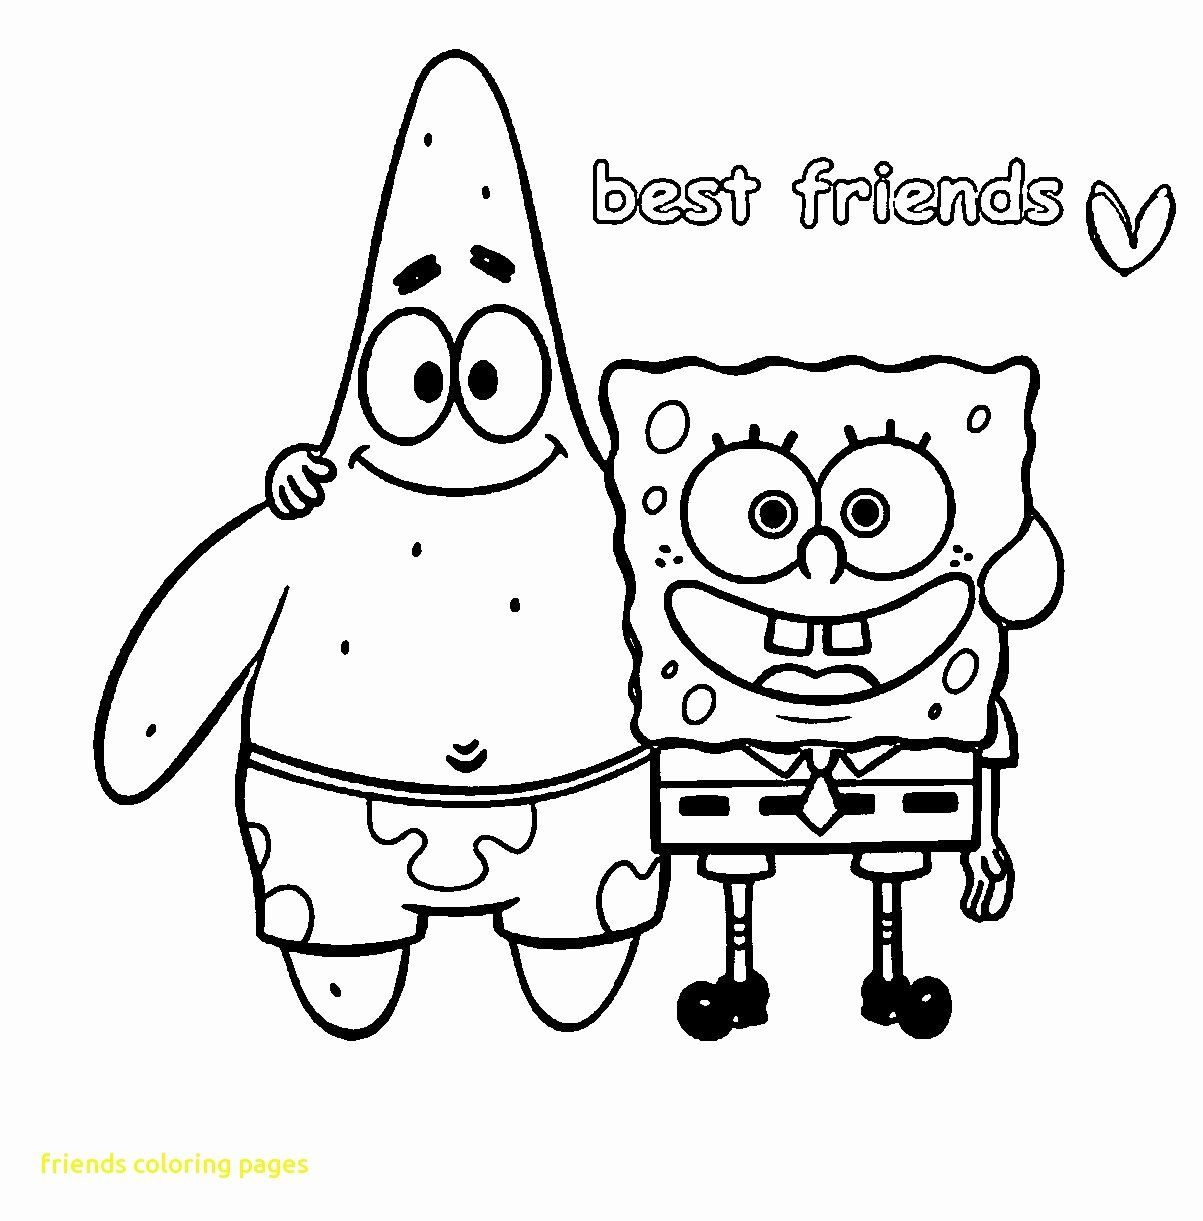 Bff Coloring Pages To Print Unique Coloring Book World Coloring Book World Friendship Pages Best Friend Drawings Bff Drawings Cool Coloring Pages